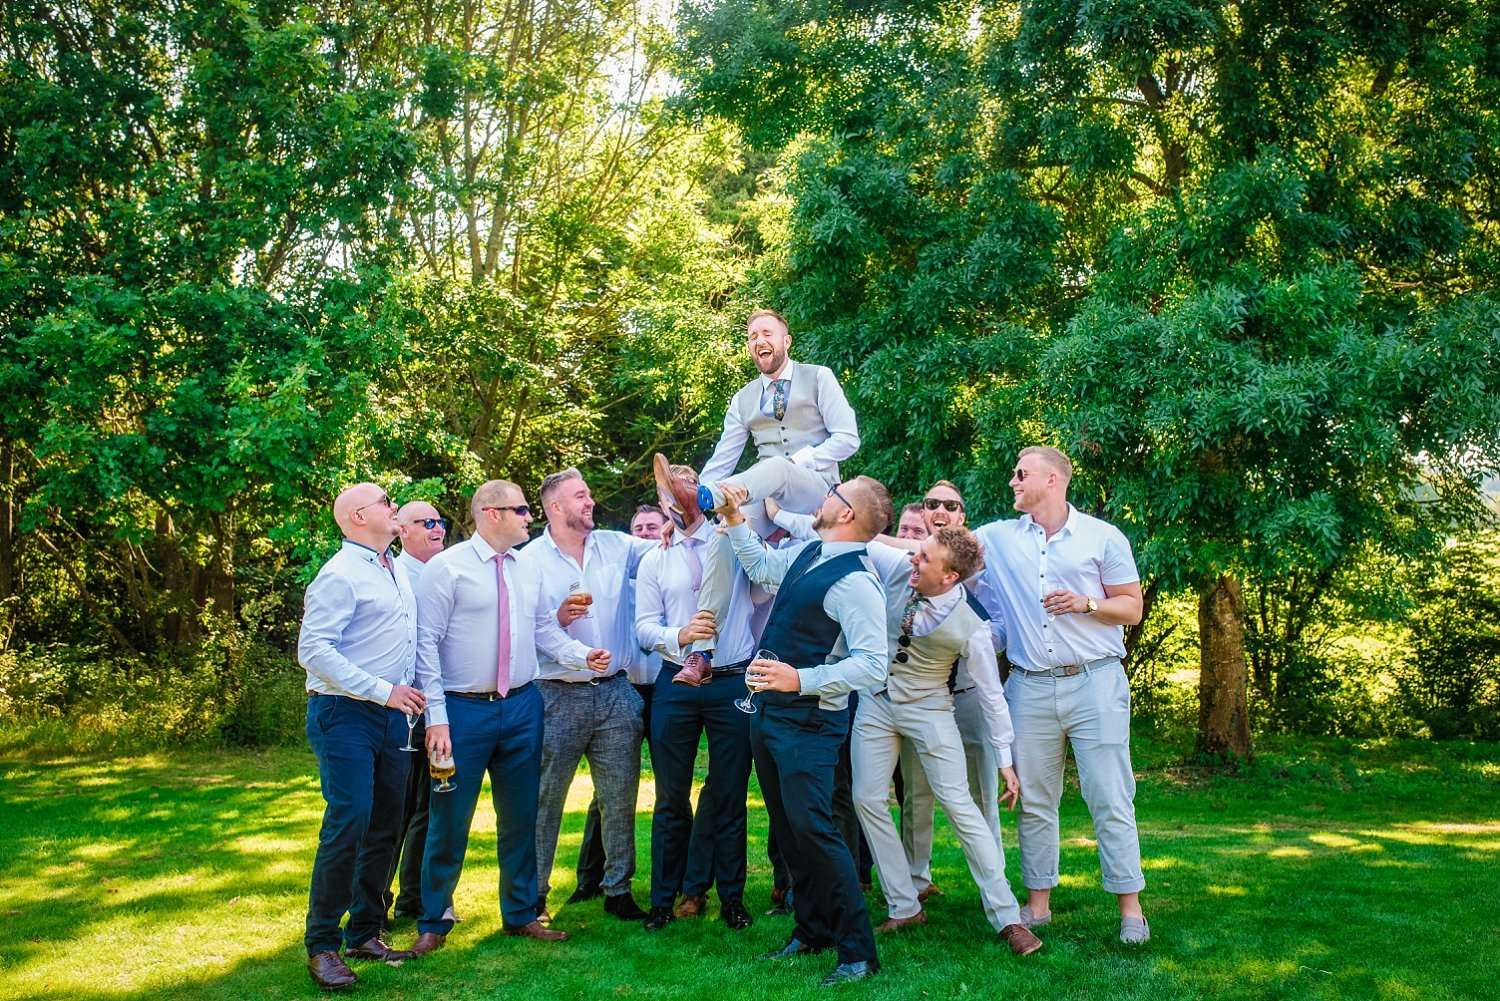 Farnham Wedding Photographer - boys lifted groom up. groom is laughing